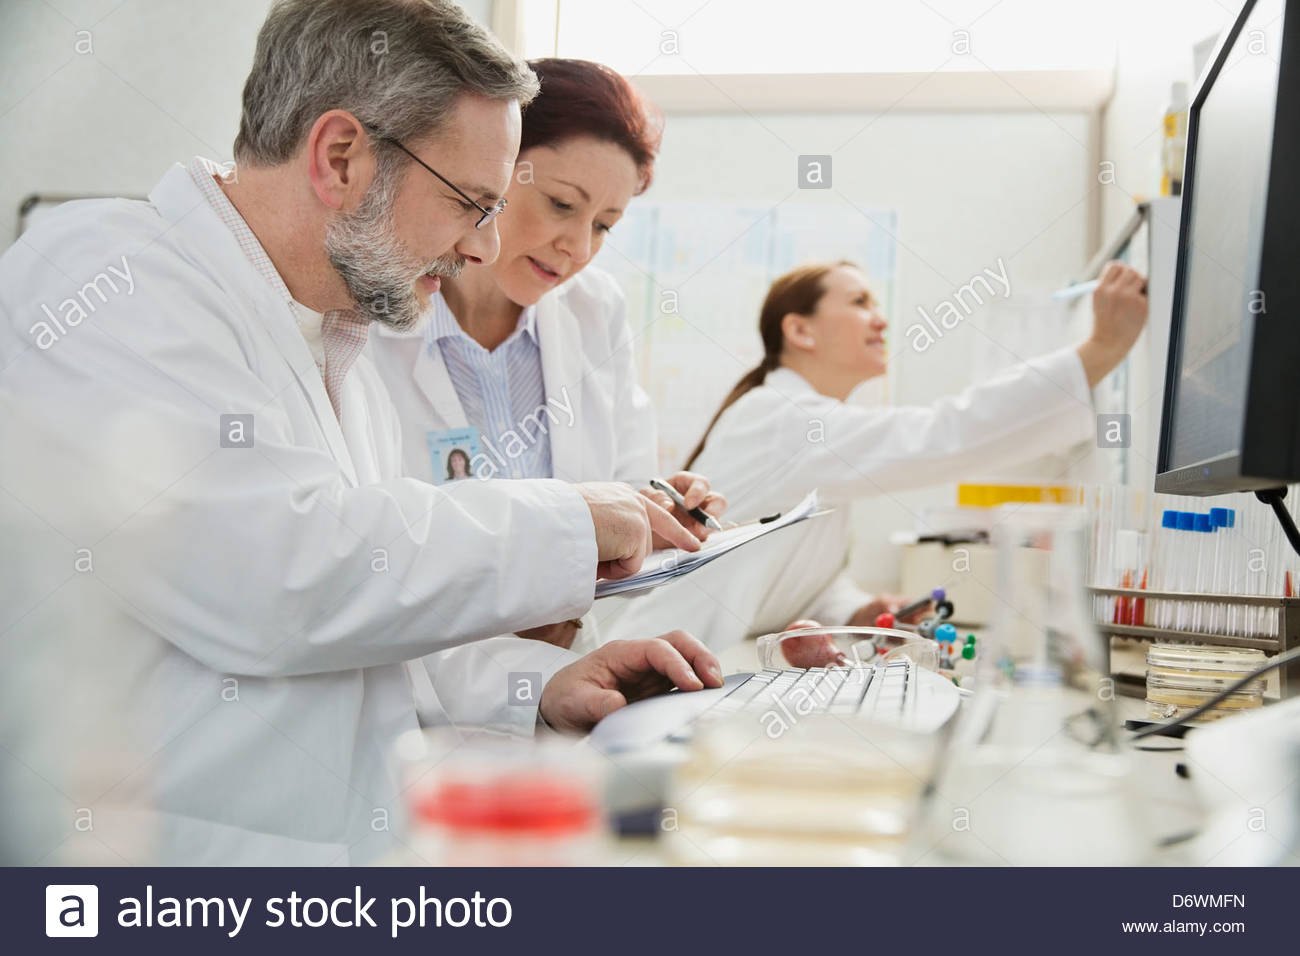 Male and female medical professionals working in lab - Stock Image